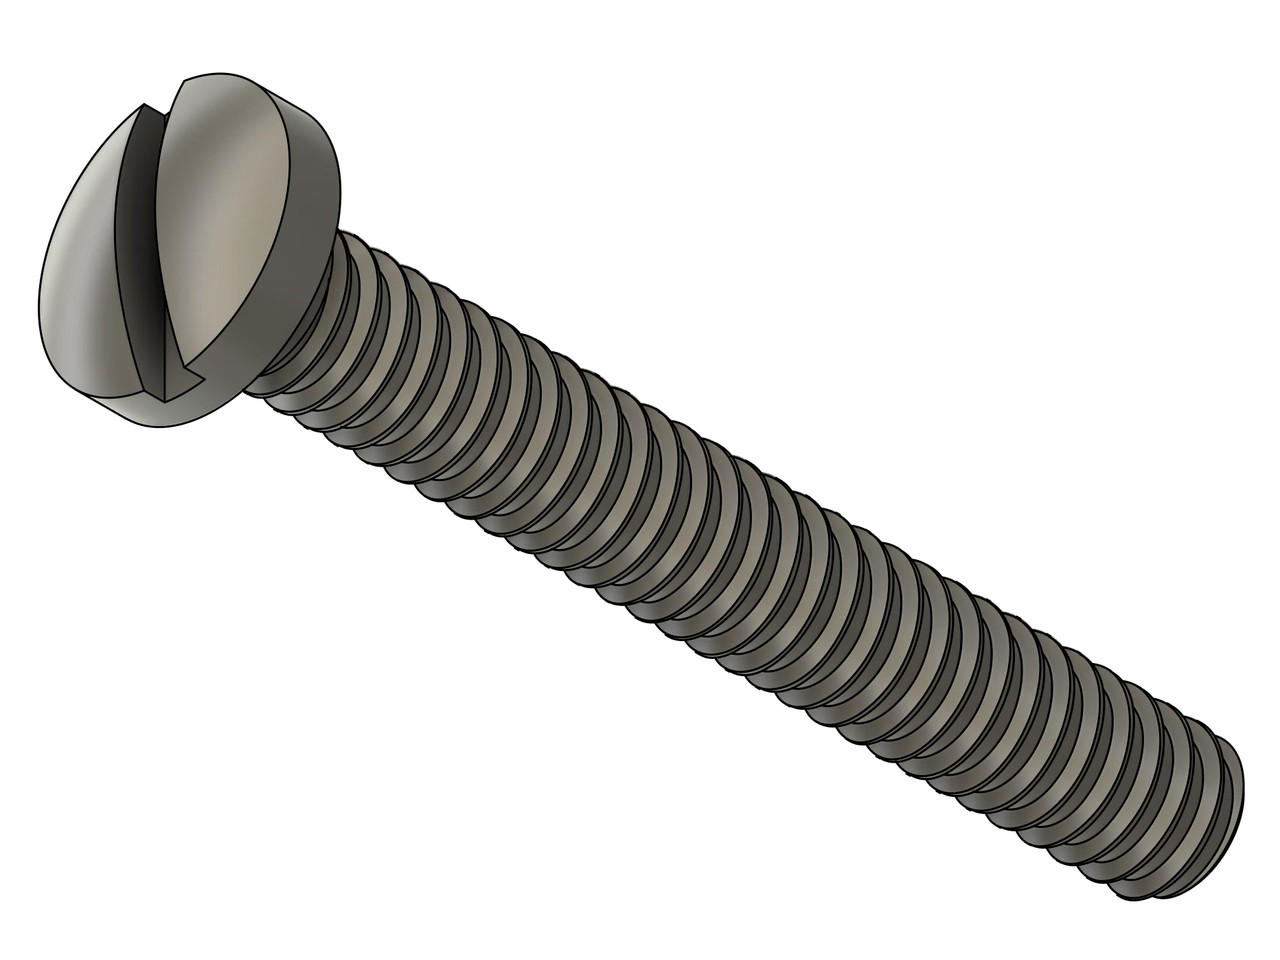 "Machine Screw Special  Thread M1.4, Pitch .30mm, Head Diameter 2.5mm, Threaded Length 9.7mm (3/8""), Overall Length 10.5mm  Material Stainless Steel, Finish Color ""Silver""   Note: Thread is at maximum for M1.4 Thread.  This screw was designed for tight fit like class 3 fit instead of standard class 2.      Price is for 100 count package with bulk pricing available. Please contact sales@minitaps.com for bulk pricing pricing or any additional questions or information."